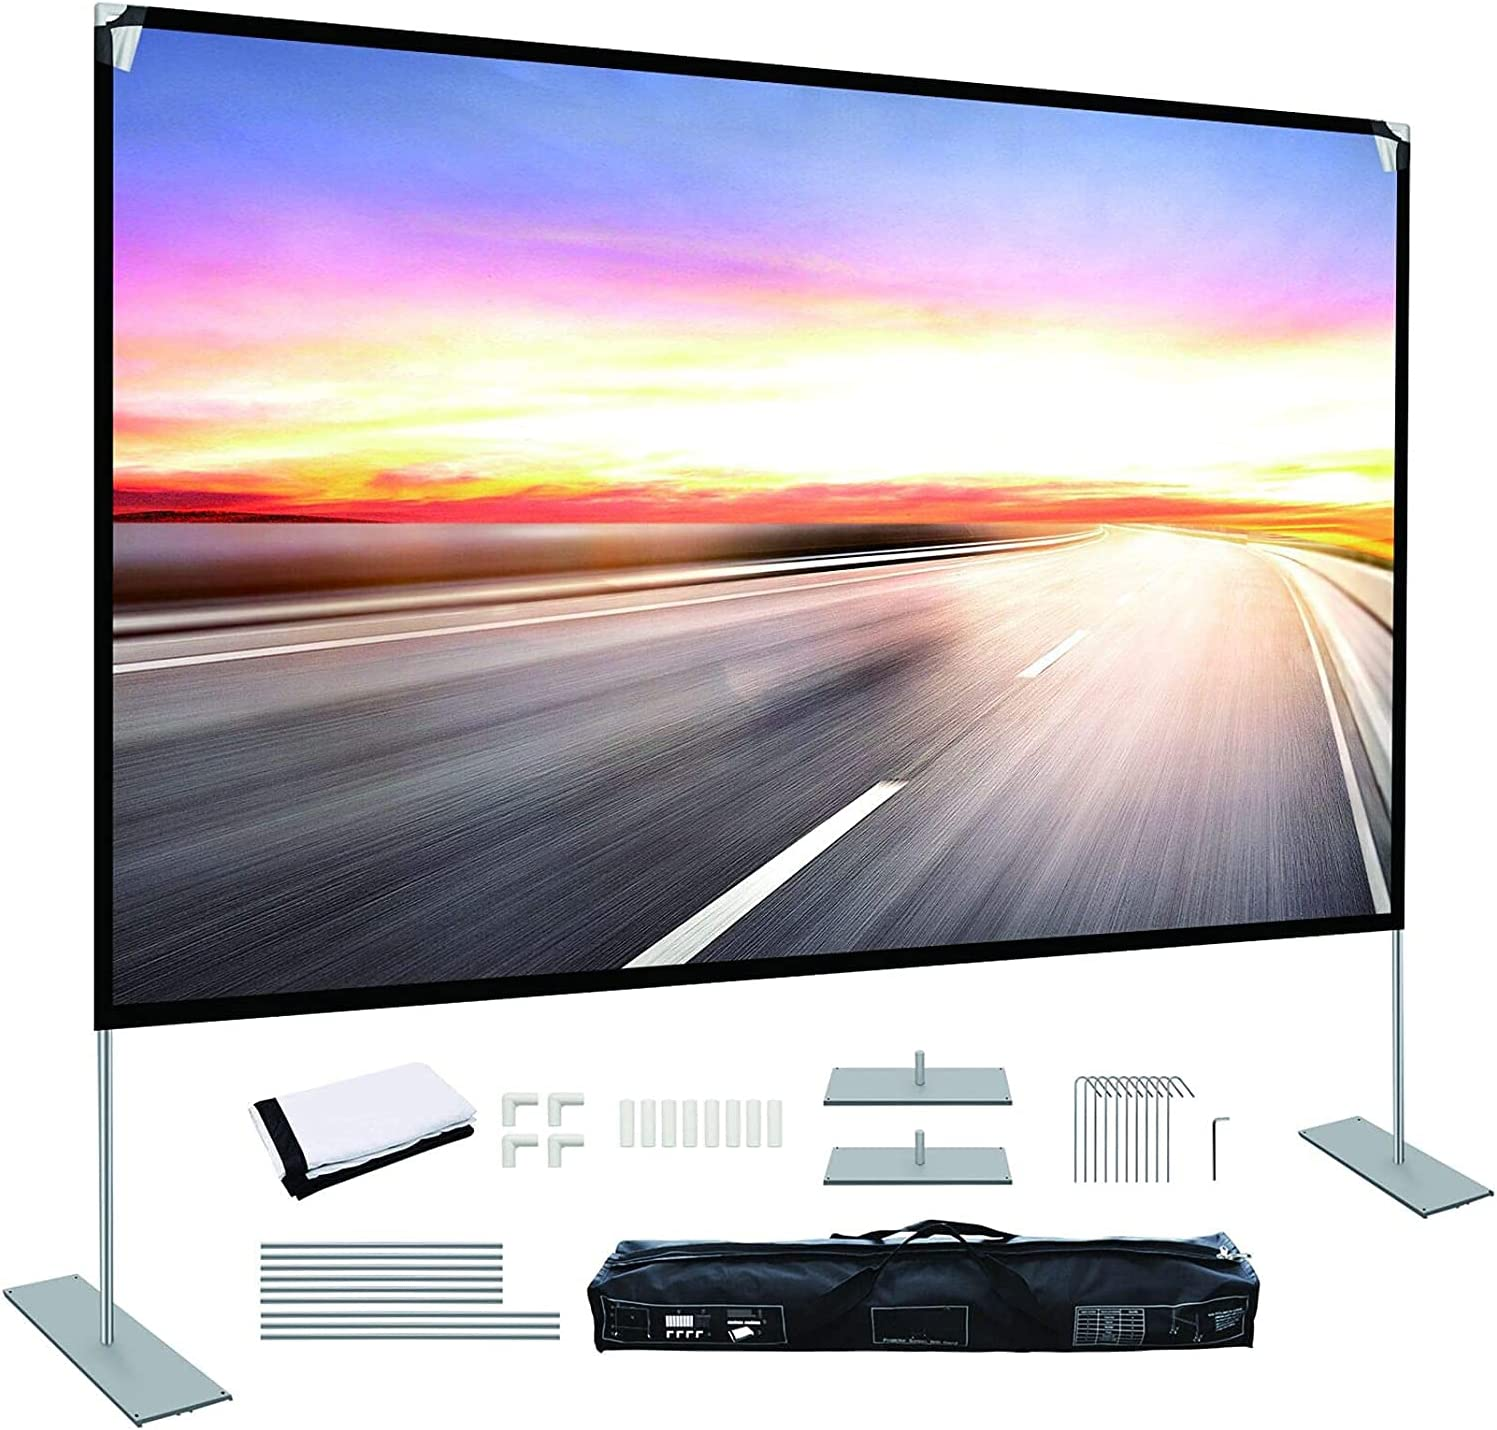 Projector Screen with Stand 100 inch Portable Projection Screen 16:9 4K HD Rear Front Projections Movies Screen for Indoor Outdoor Home Theater Backyard